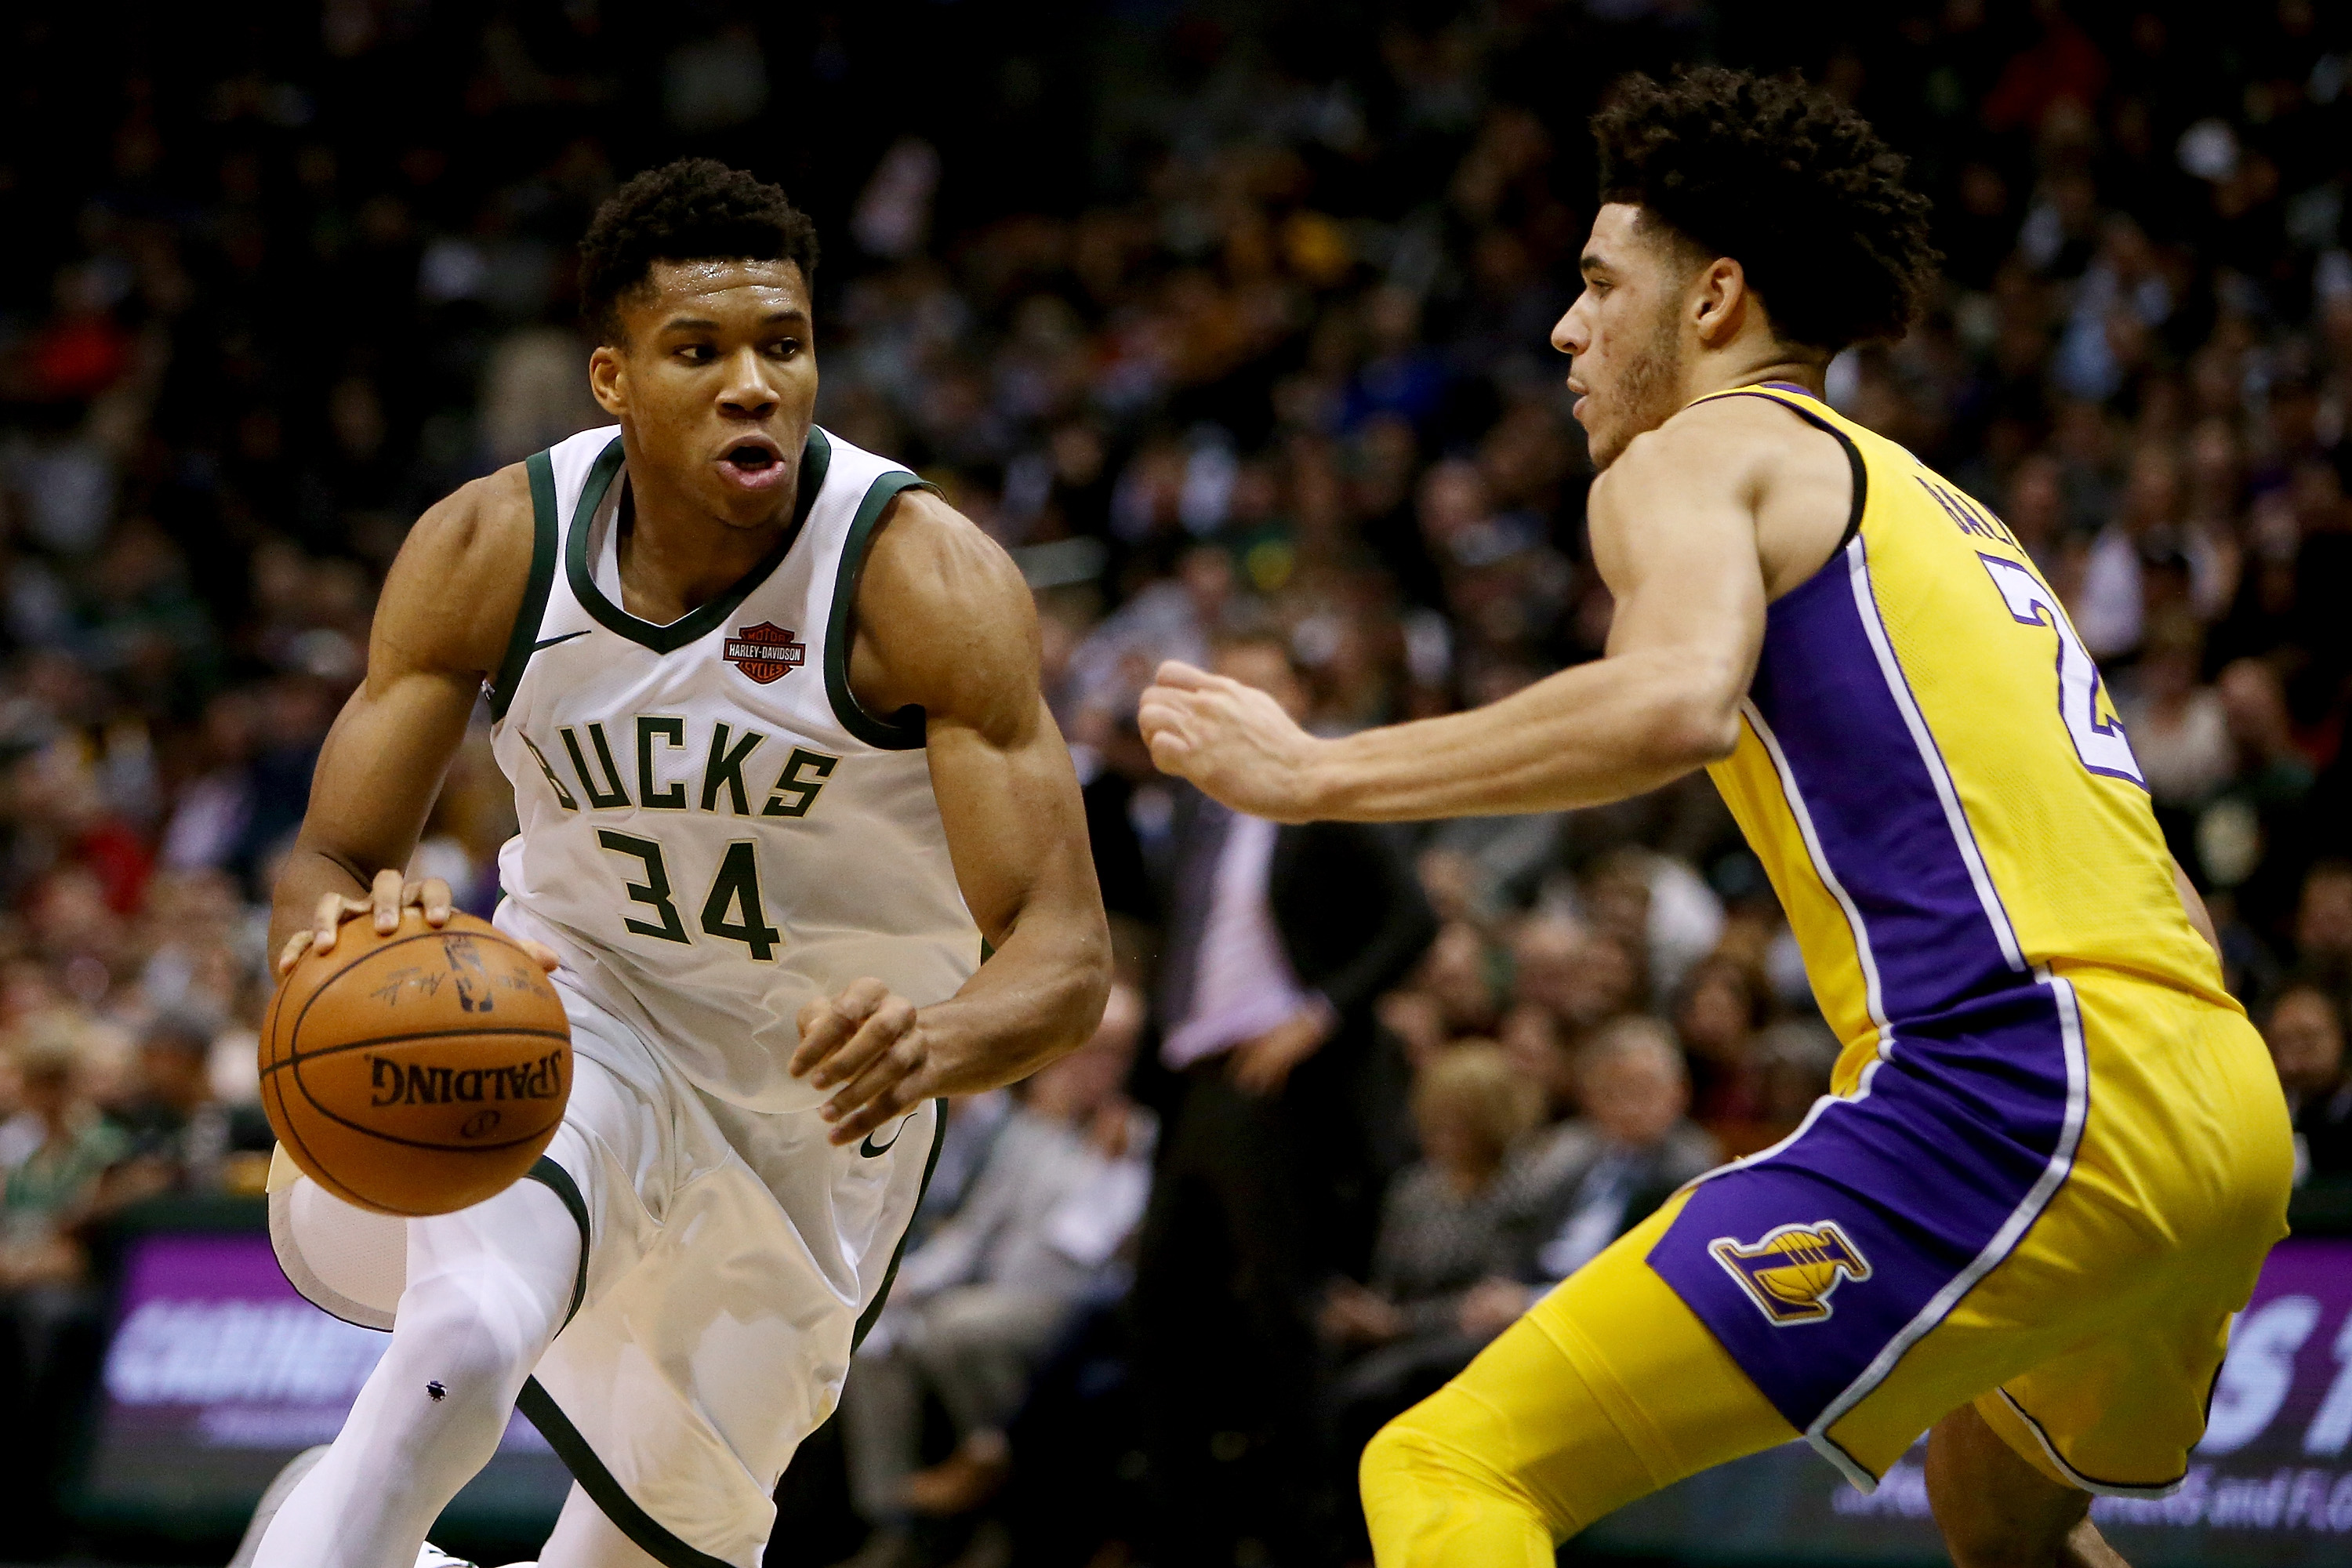 Memphis Grizzlies vs Milwaukee Bucks: Lineups, preview and prediction 11/13/17